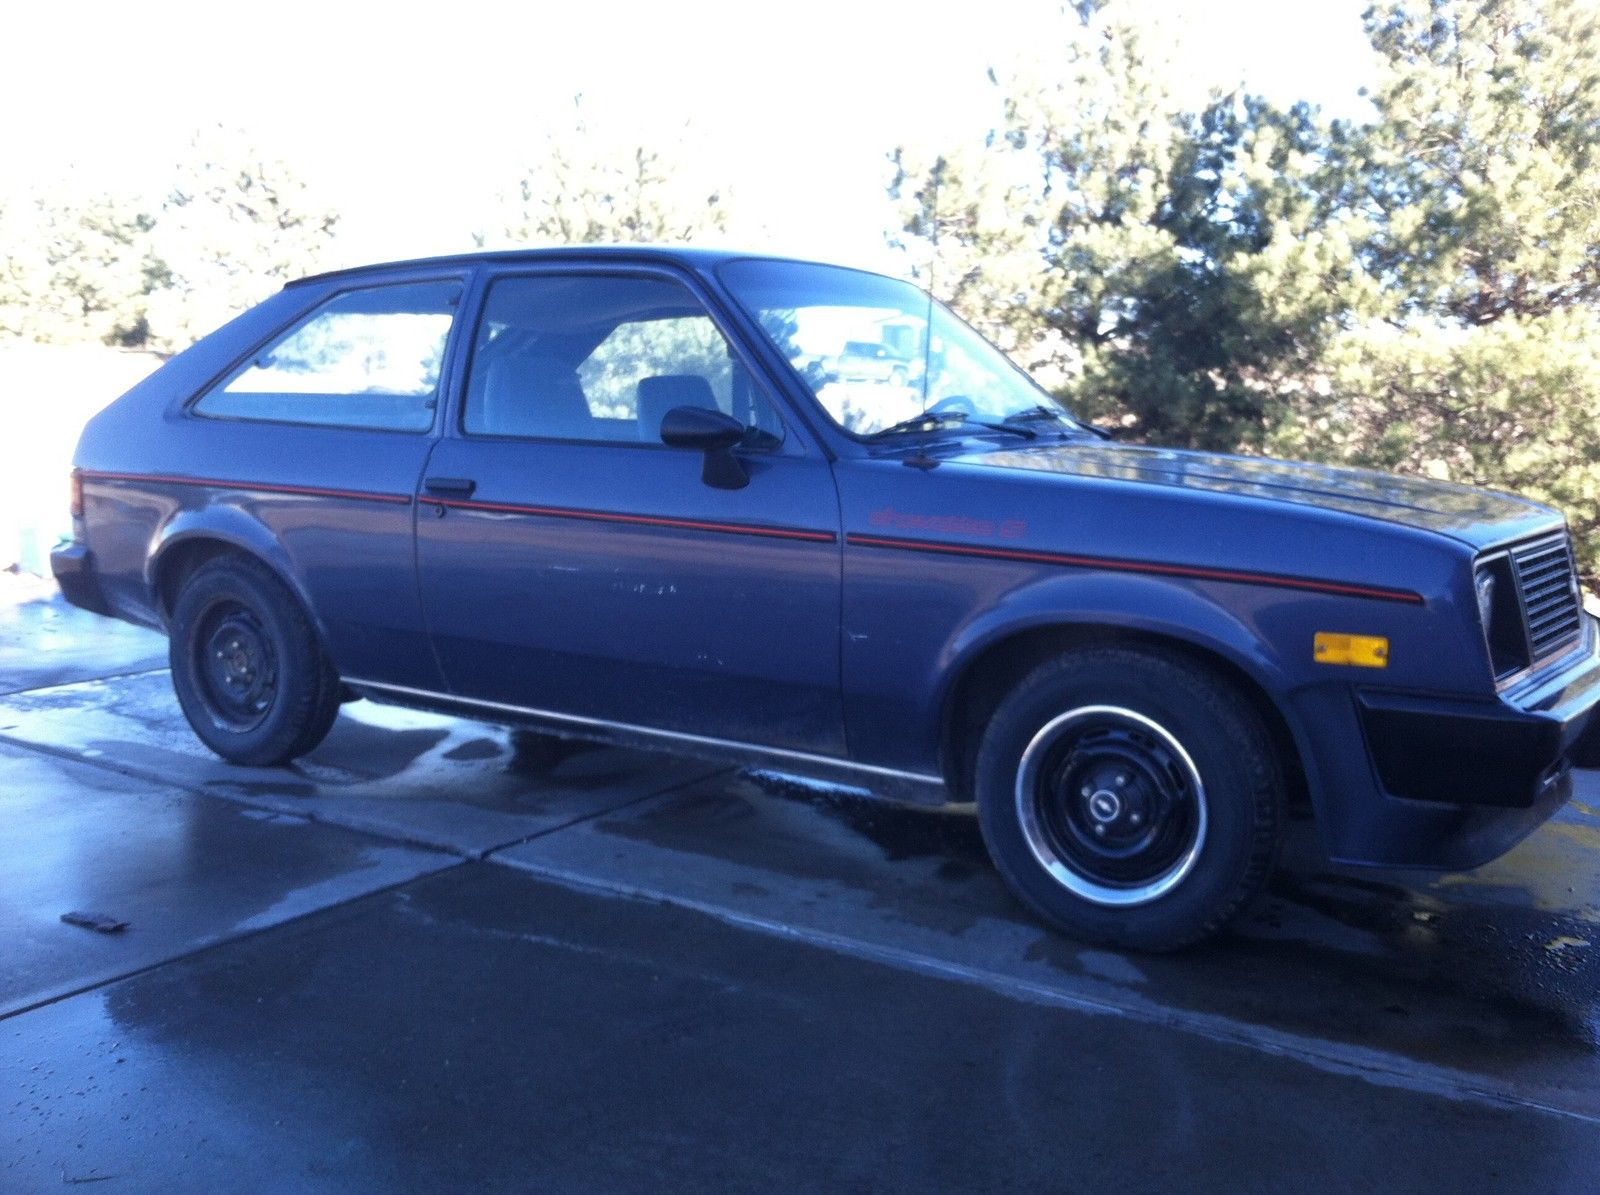 1985 diesel chevette for sale in adams nebraska united states for sale photos technical specifications description classiccardb com